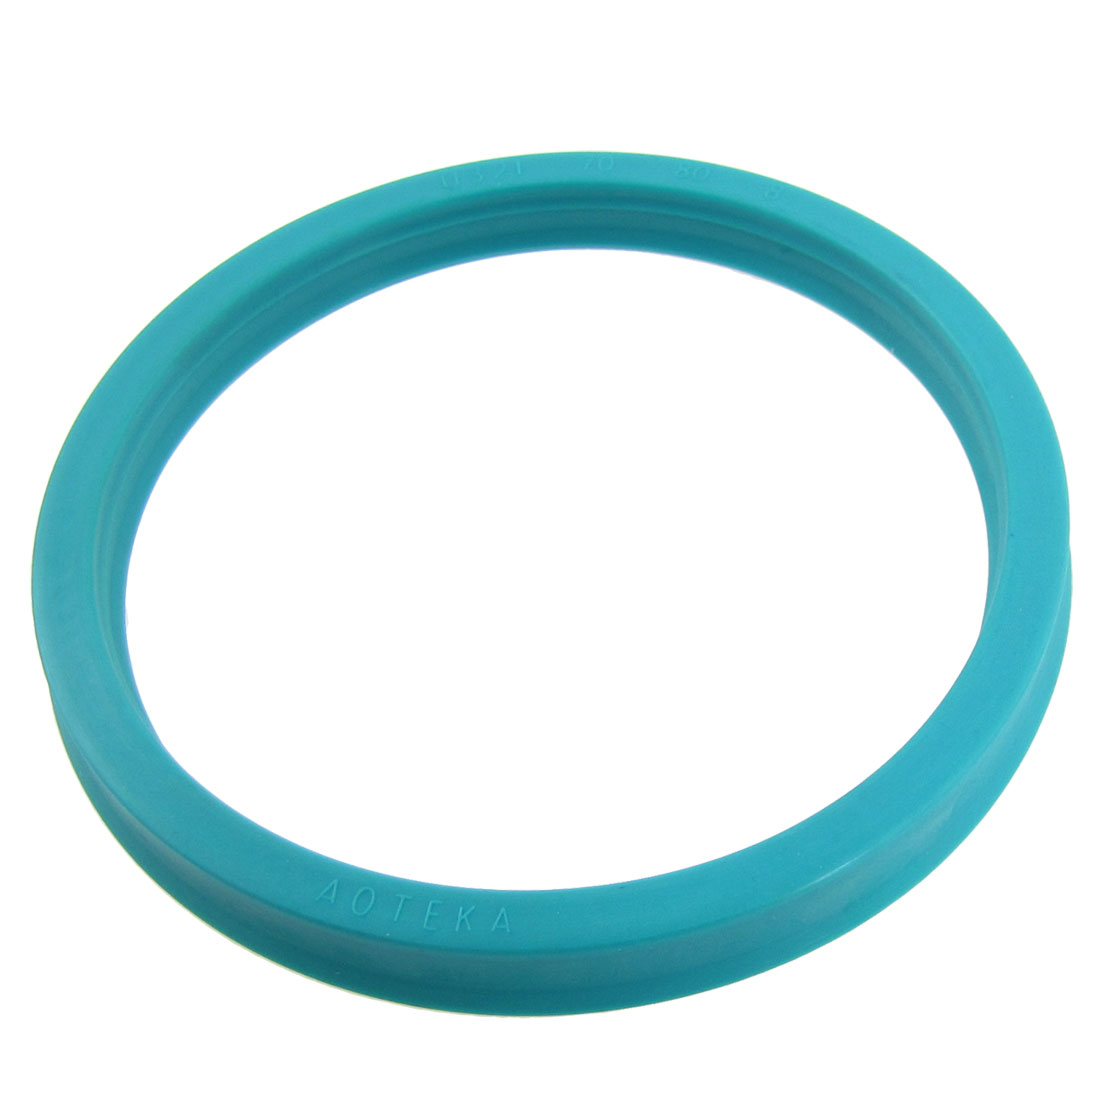 Metric 70 x 80 x 8mm Single Lip Piston Rod Oil Grease Seal U32i